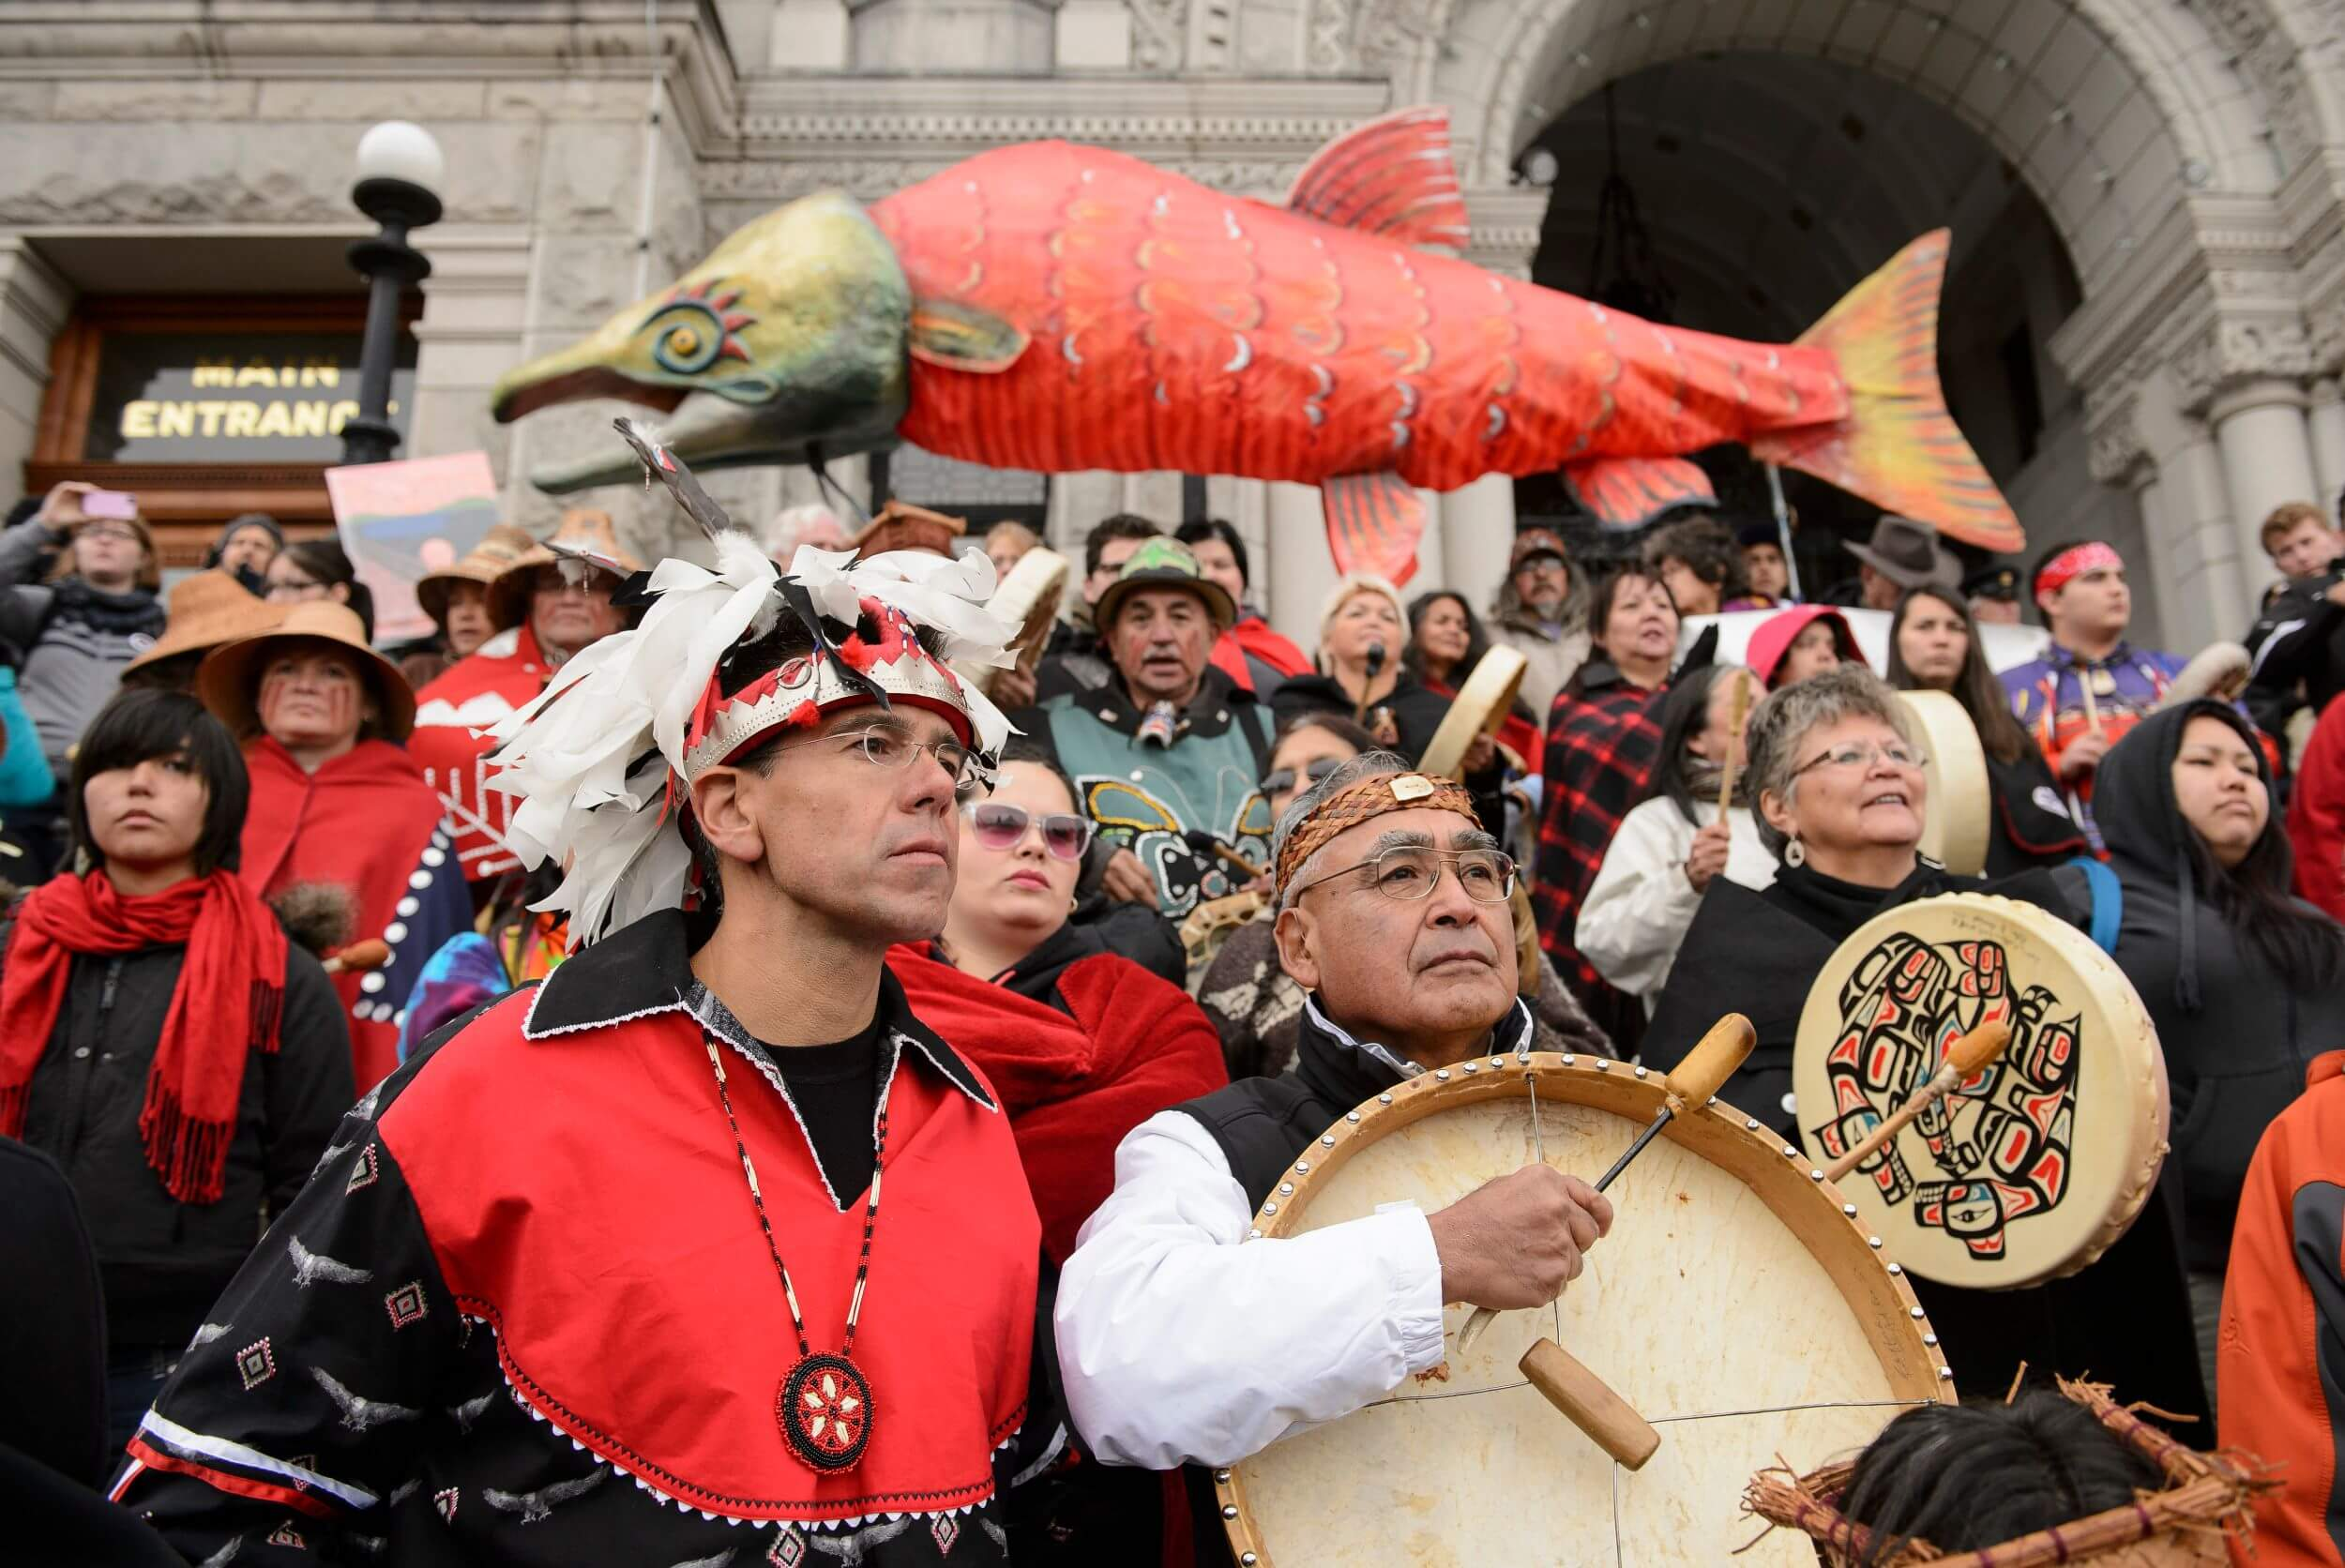 A close-up shot of people on the steps of a large building. Many are dressed in traditional indigenous clothing and hold drums. Above them, a large paper salmon.